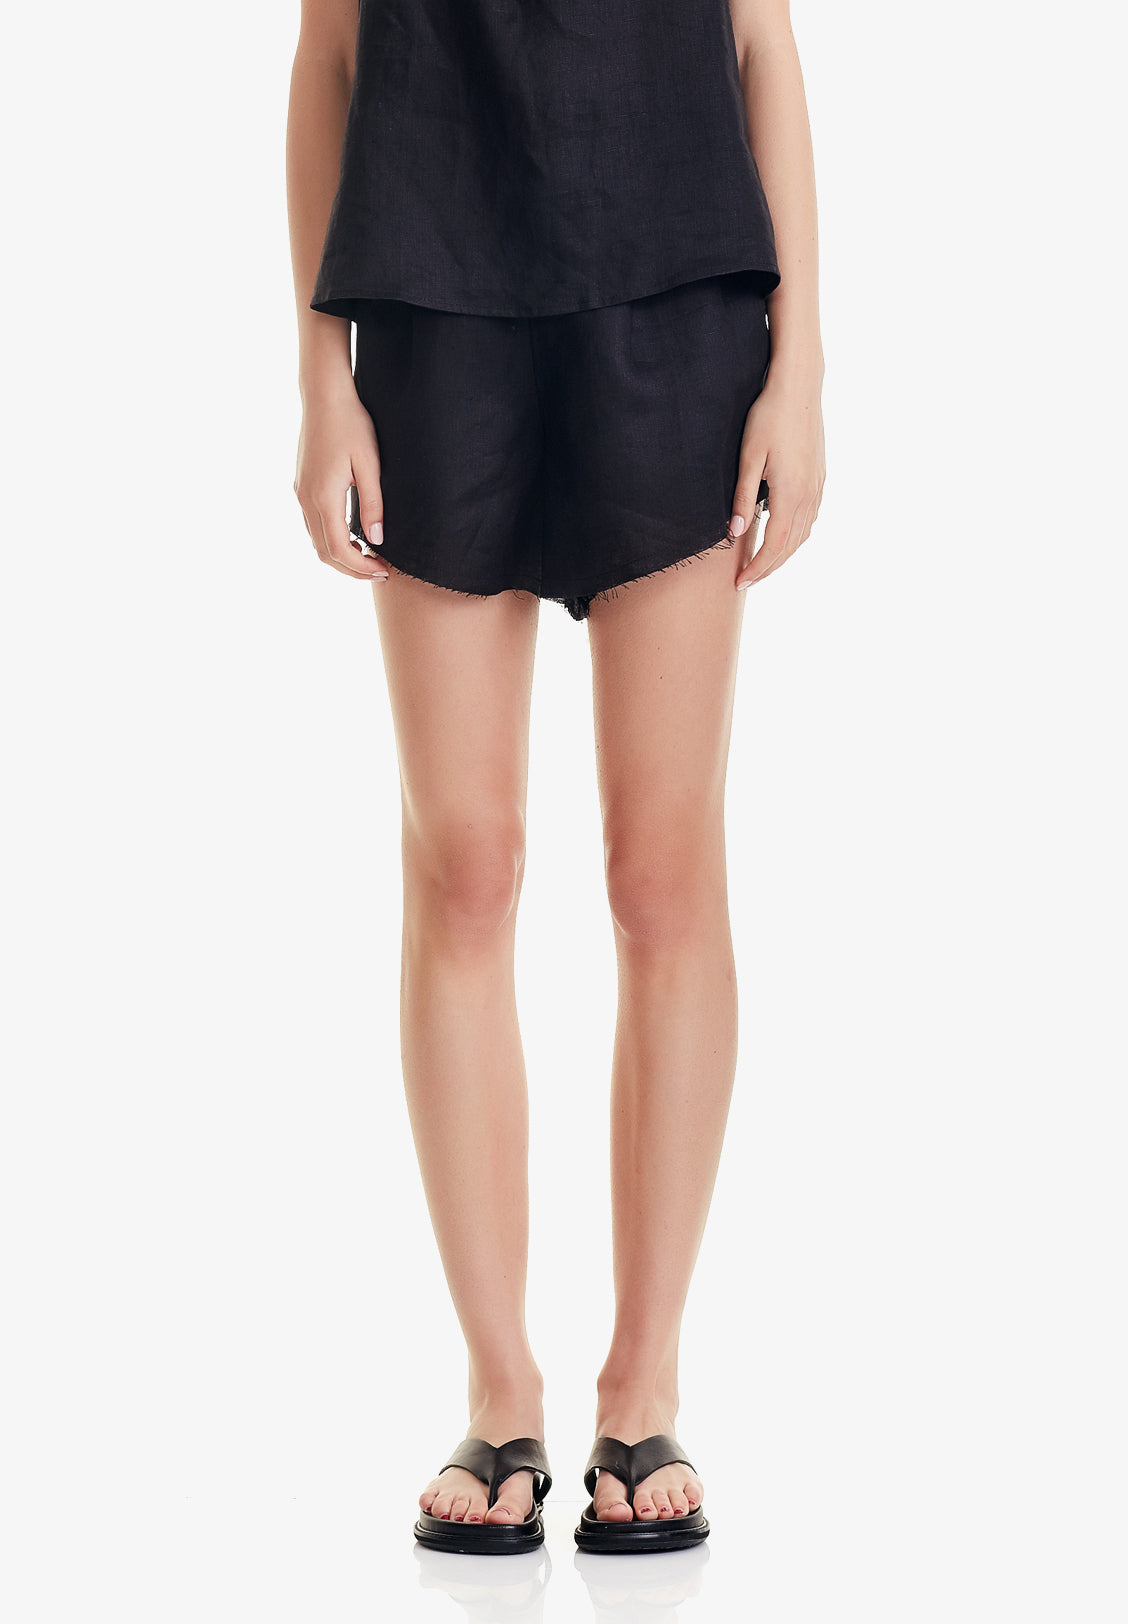 WOMEN'S SLIP SHORT, BLACK